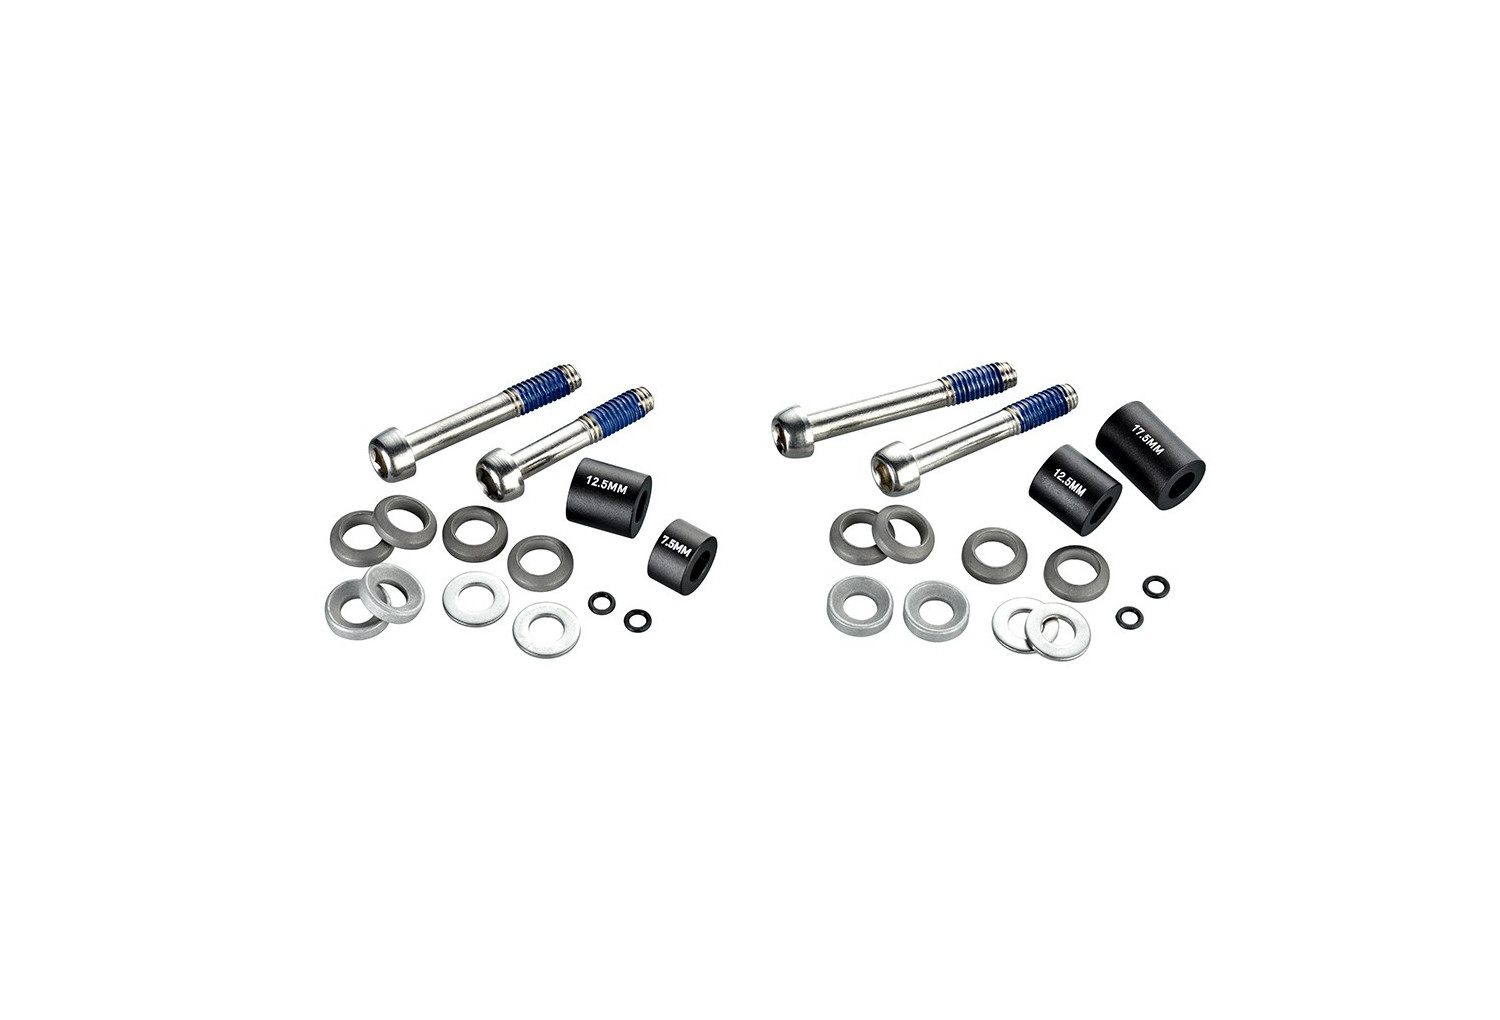 Stainless Avid Caliper Mounting Hardware includes Caliper Mounting Bolts And